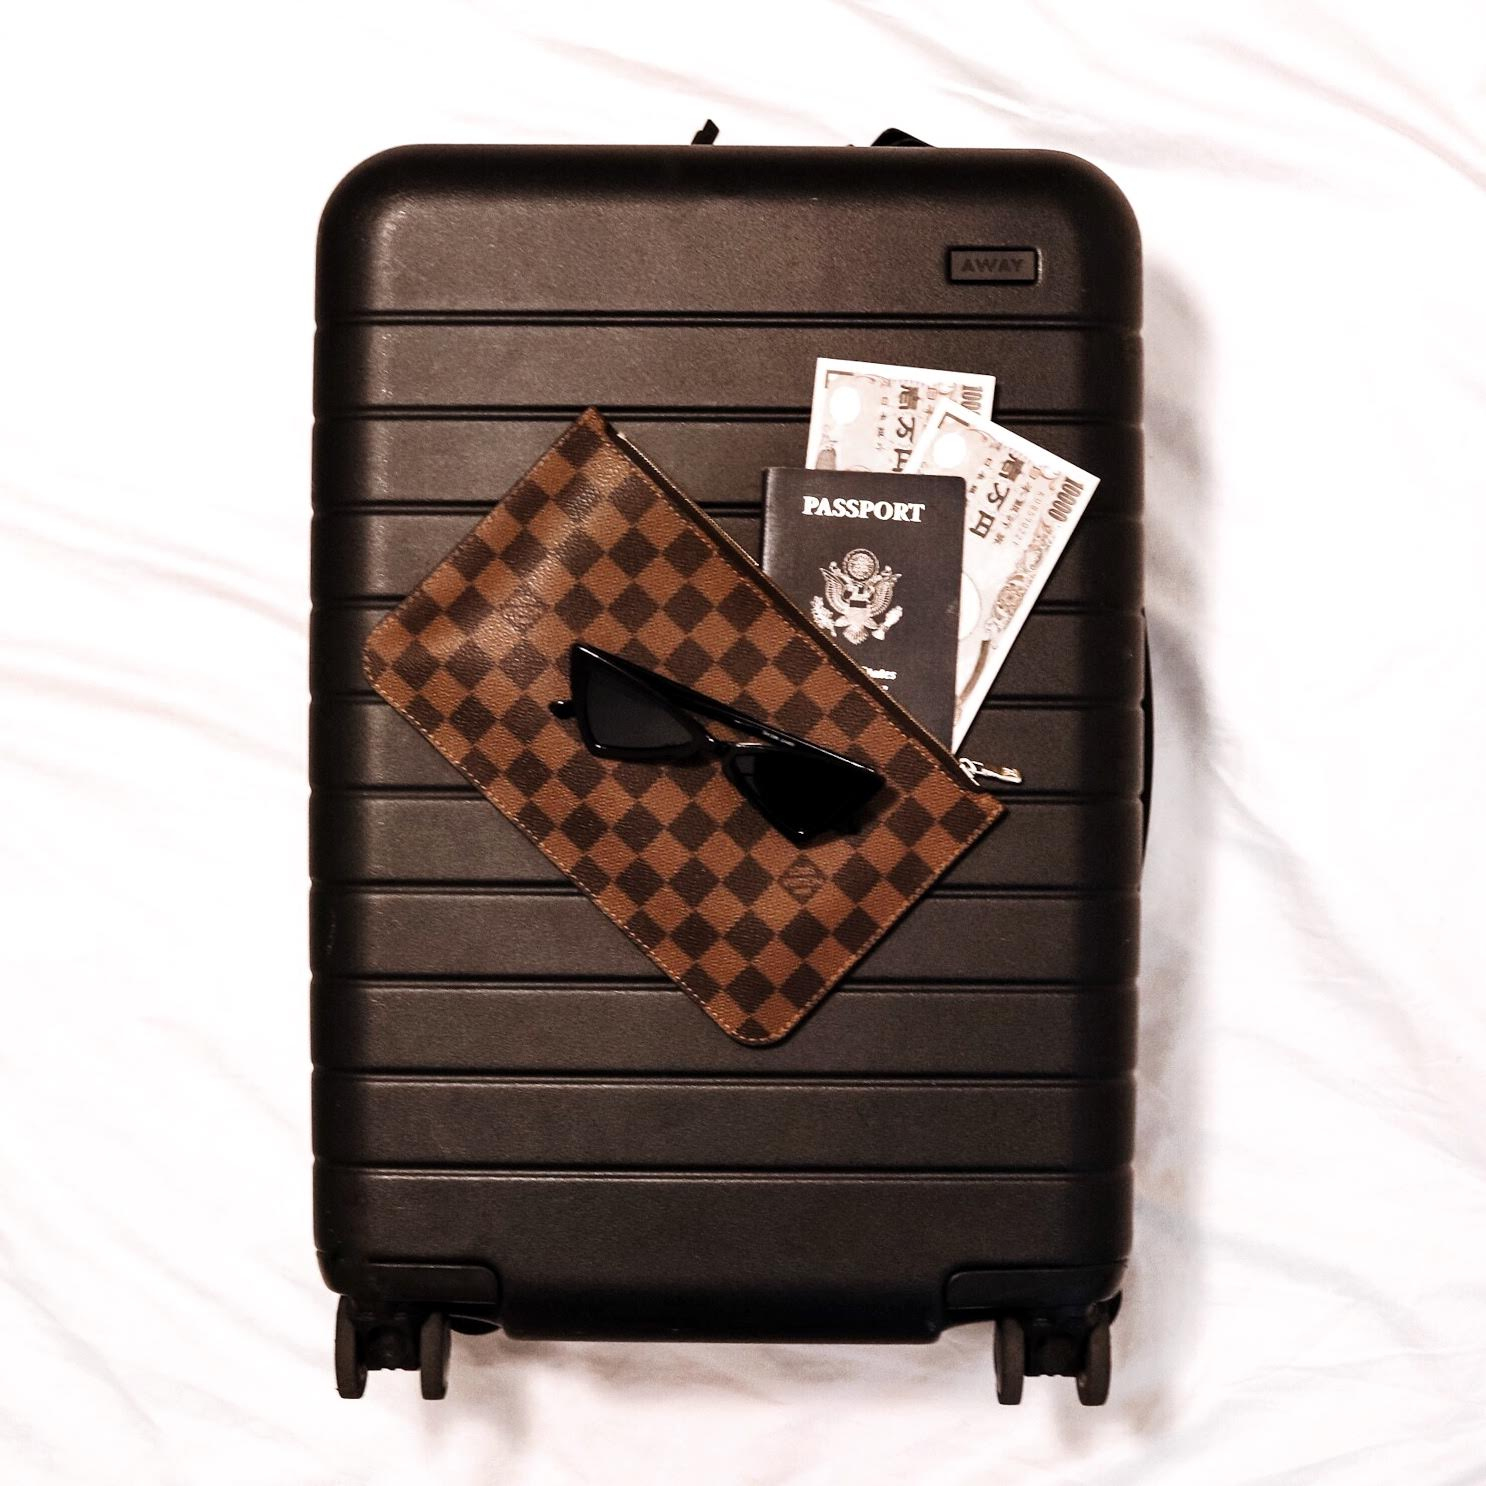 Away bigger carry on black, Louis Vuitton pouch, travel flatlay